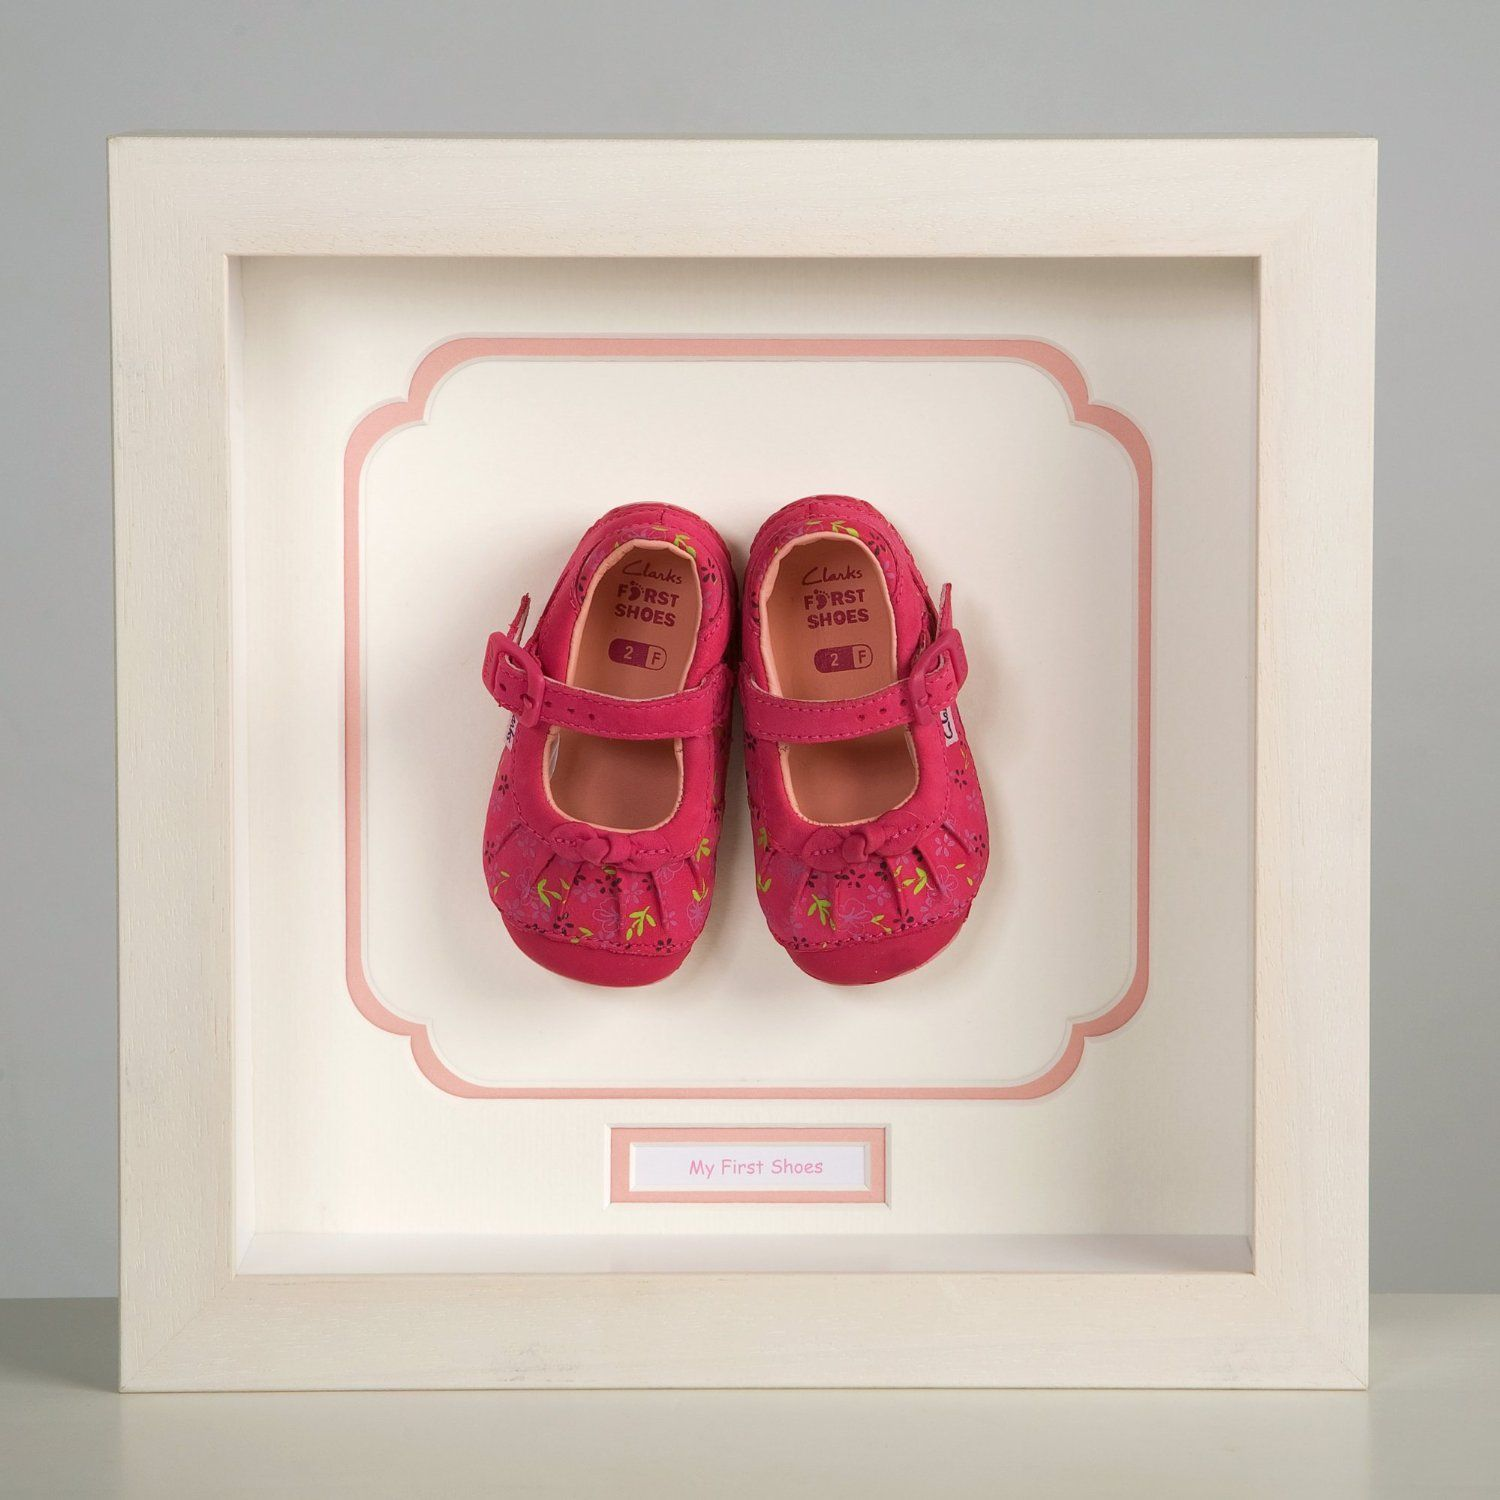 b7143517bbc64 Keepsake Frame to display a child's first shoes, pink insert. (Pink ...